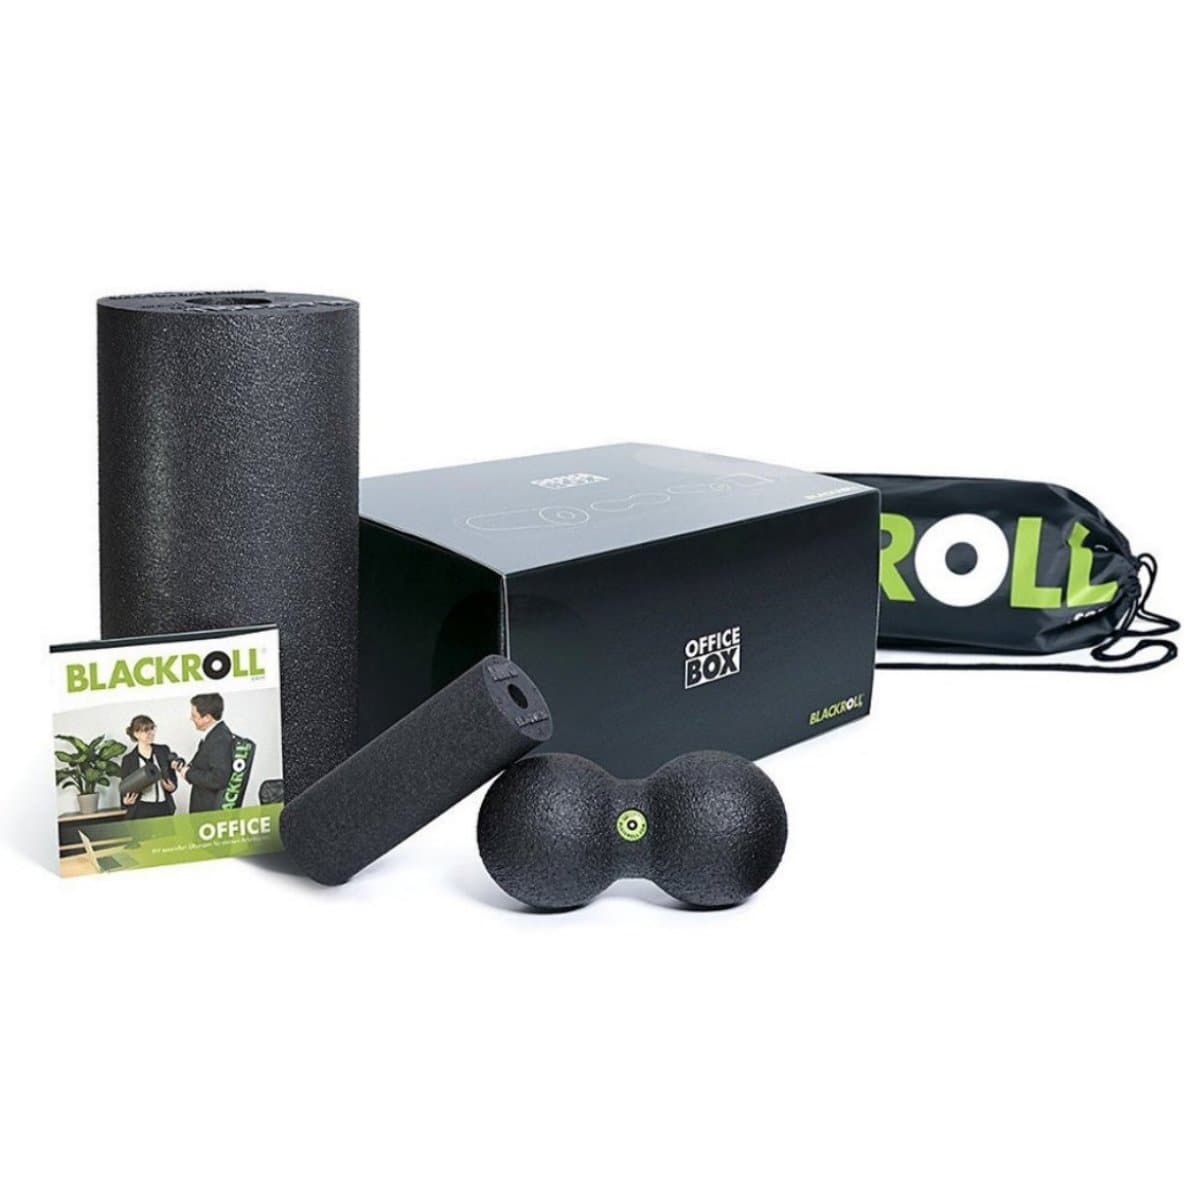 BLACKROLL® OFFICE BOX training and wellbeing, Set of 5